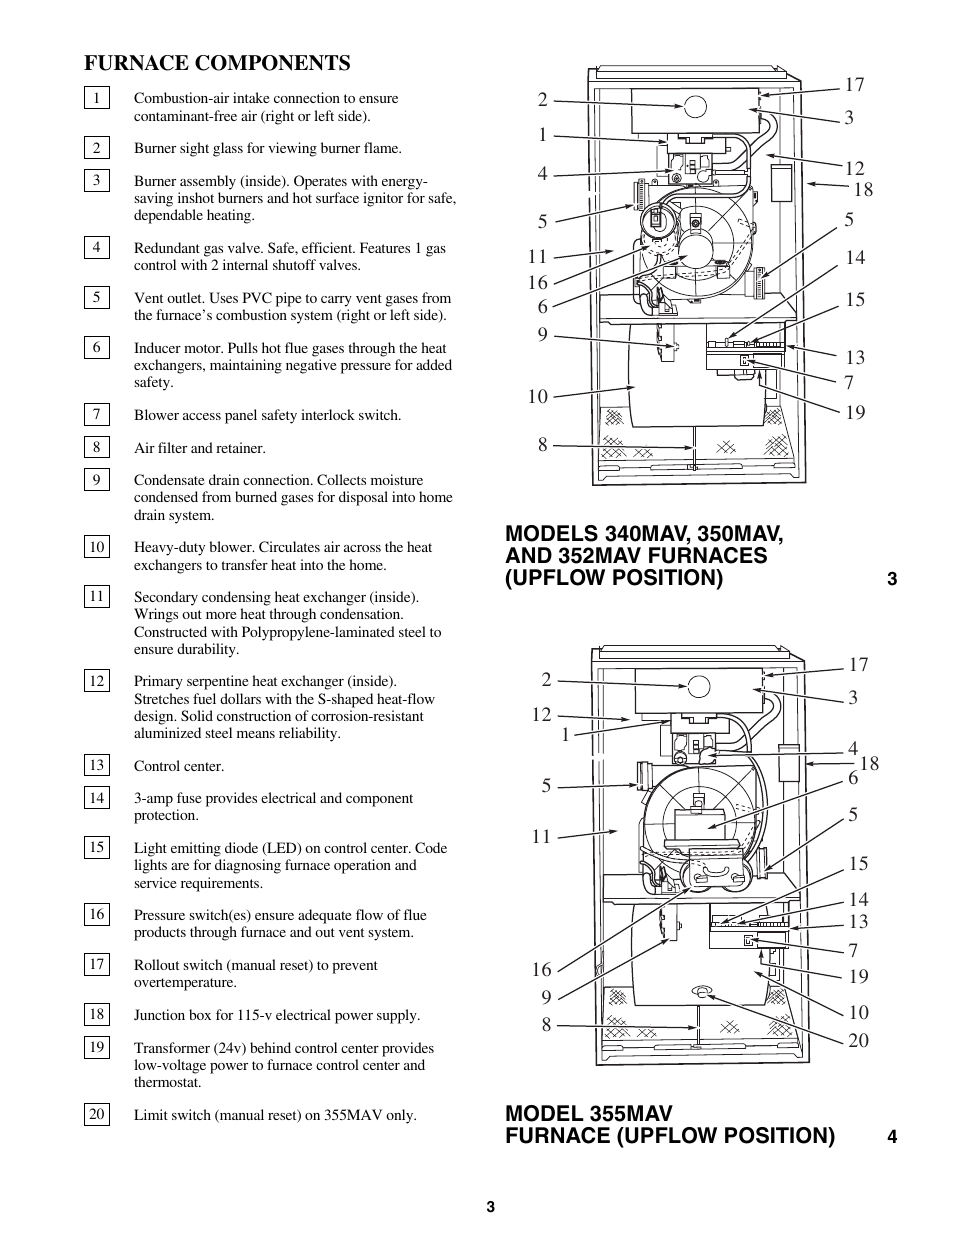 Bryant CONDENSING GAS FURNACE 352MAV User Manual | Page 3 / 12 | Also for:  CONDENSING GAS FURNACE 355MAV, CONDENSING GAS FURNACE 350MAV, CONDENSING  GAS ...